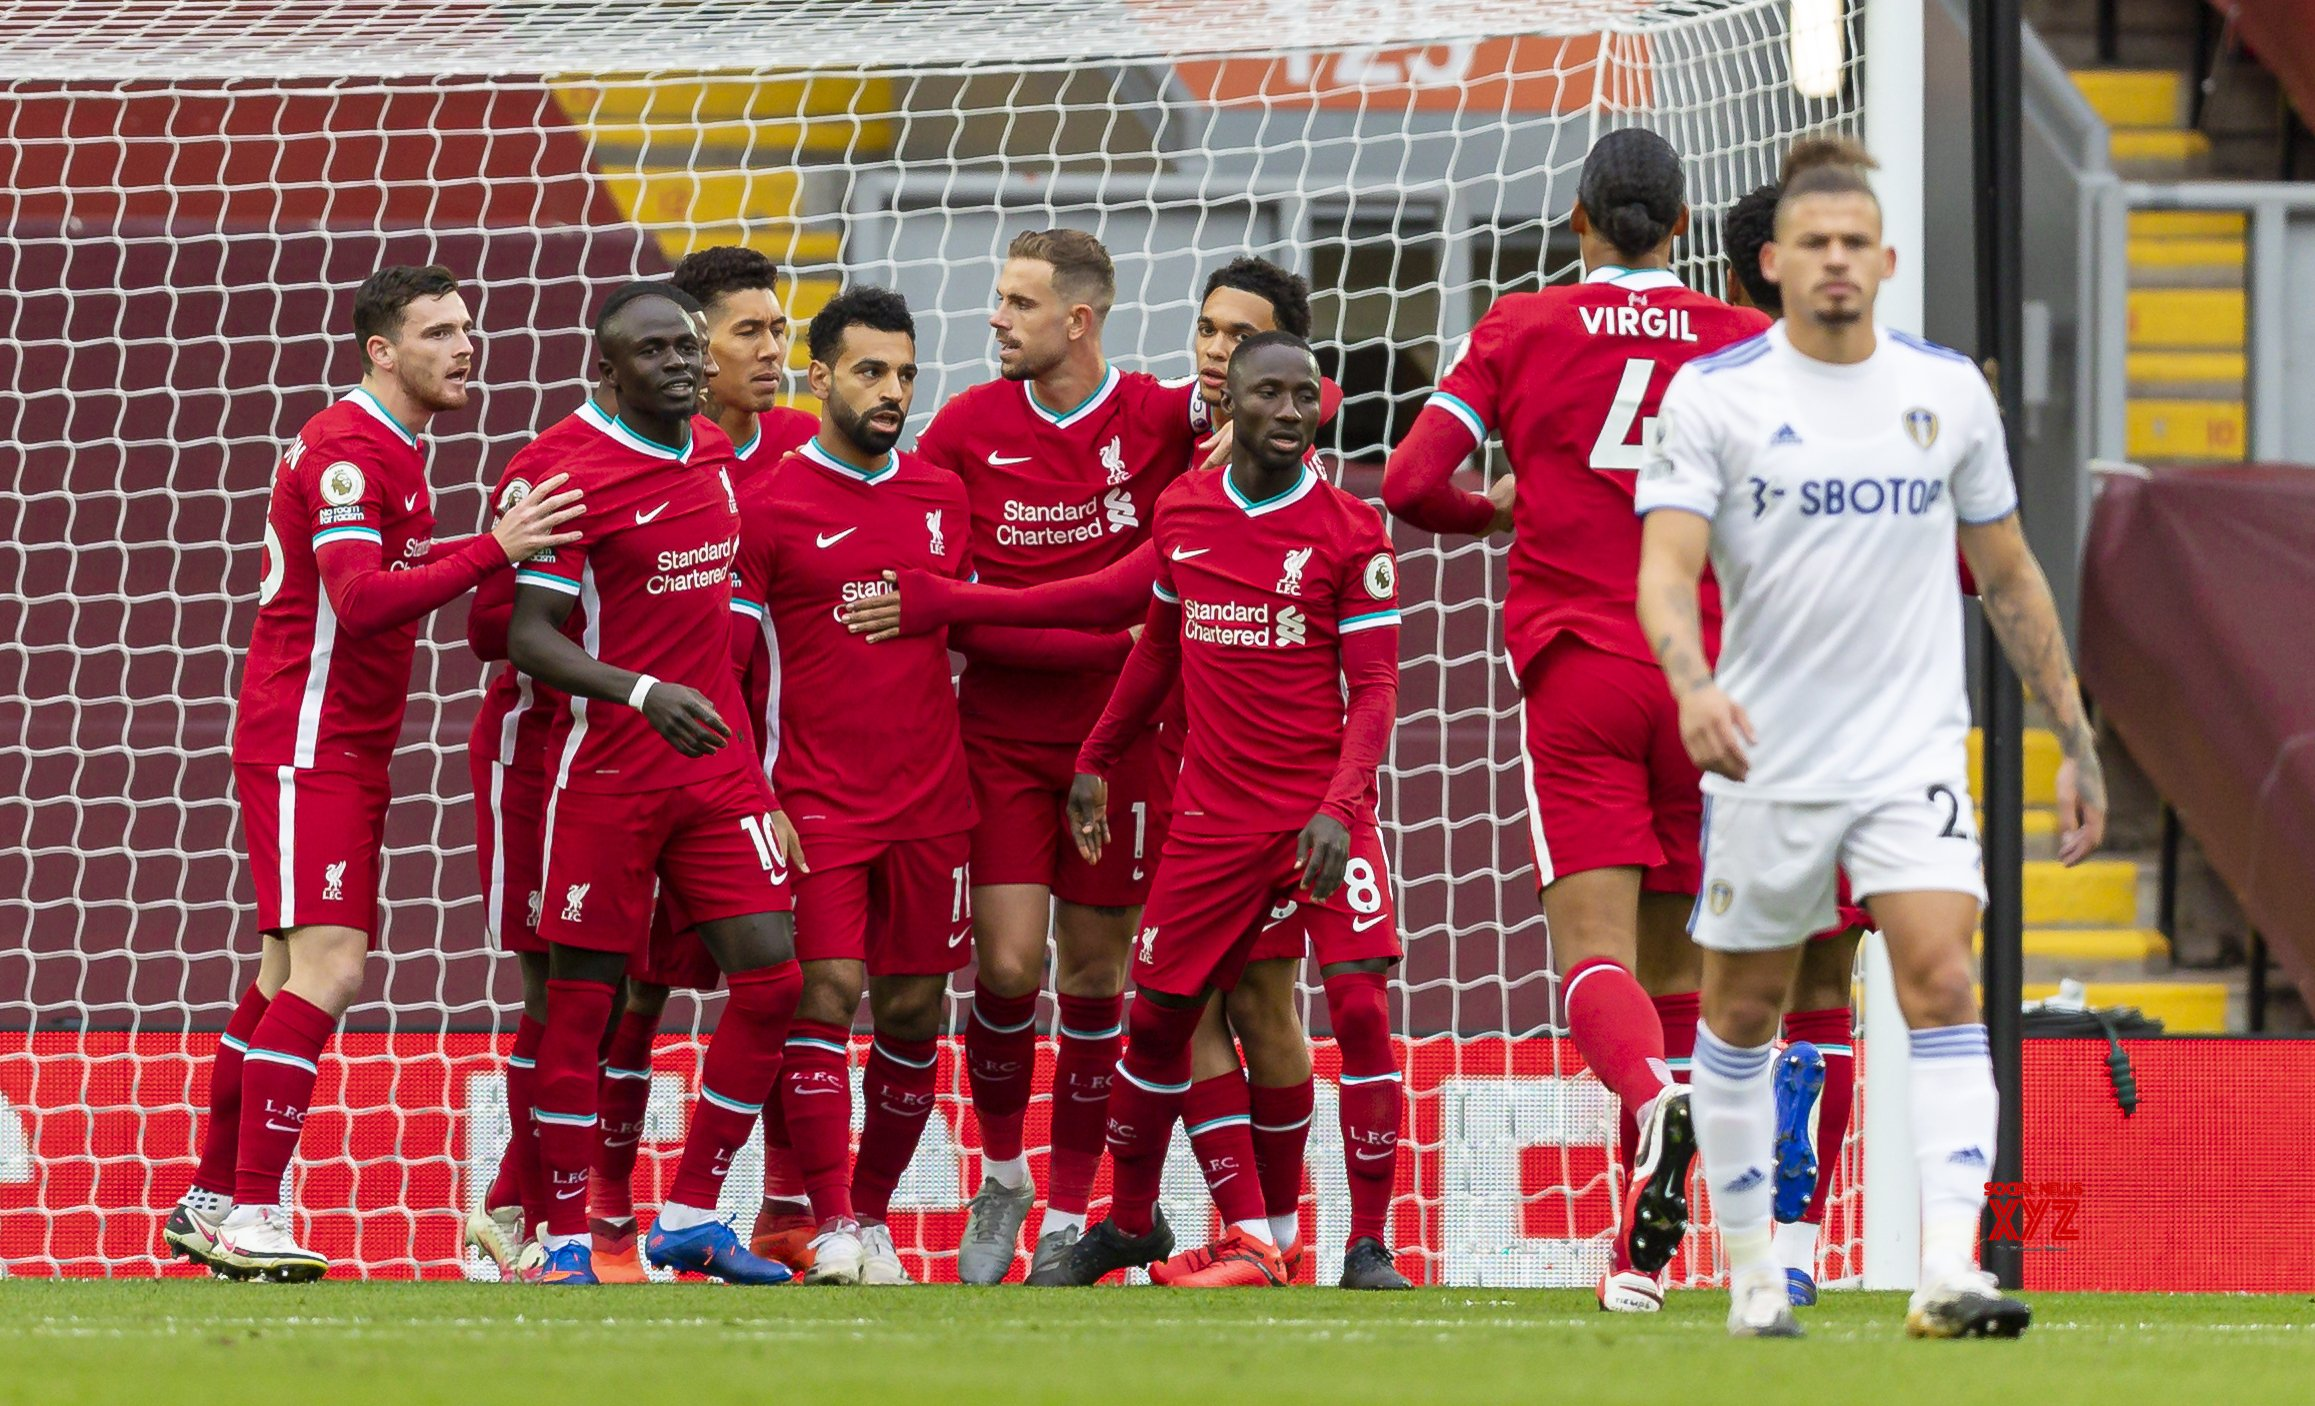 BRITAIN - LIVERPOOL - FOOTBALL - ENGLISH PREMIER LEAGUE - LIVERPOOL VS LEEDS UNITED #Gallery